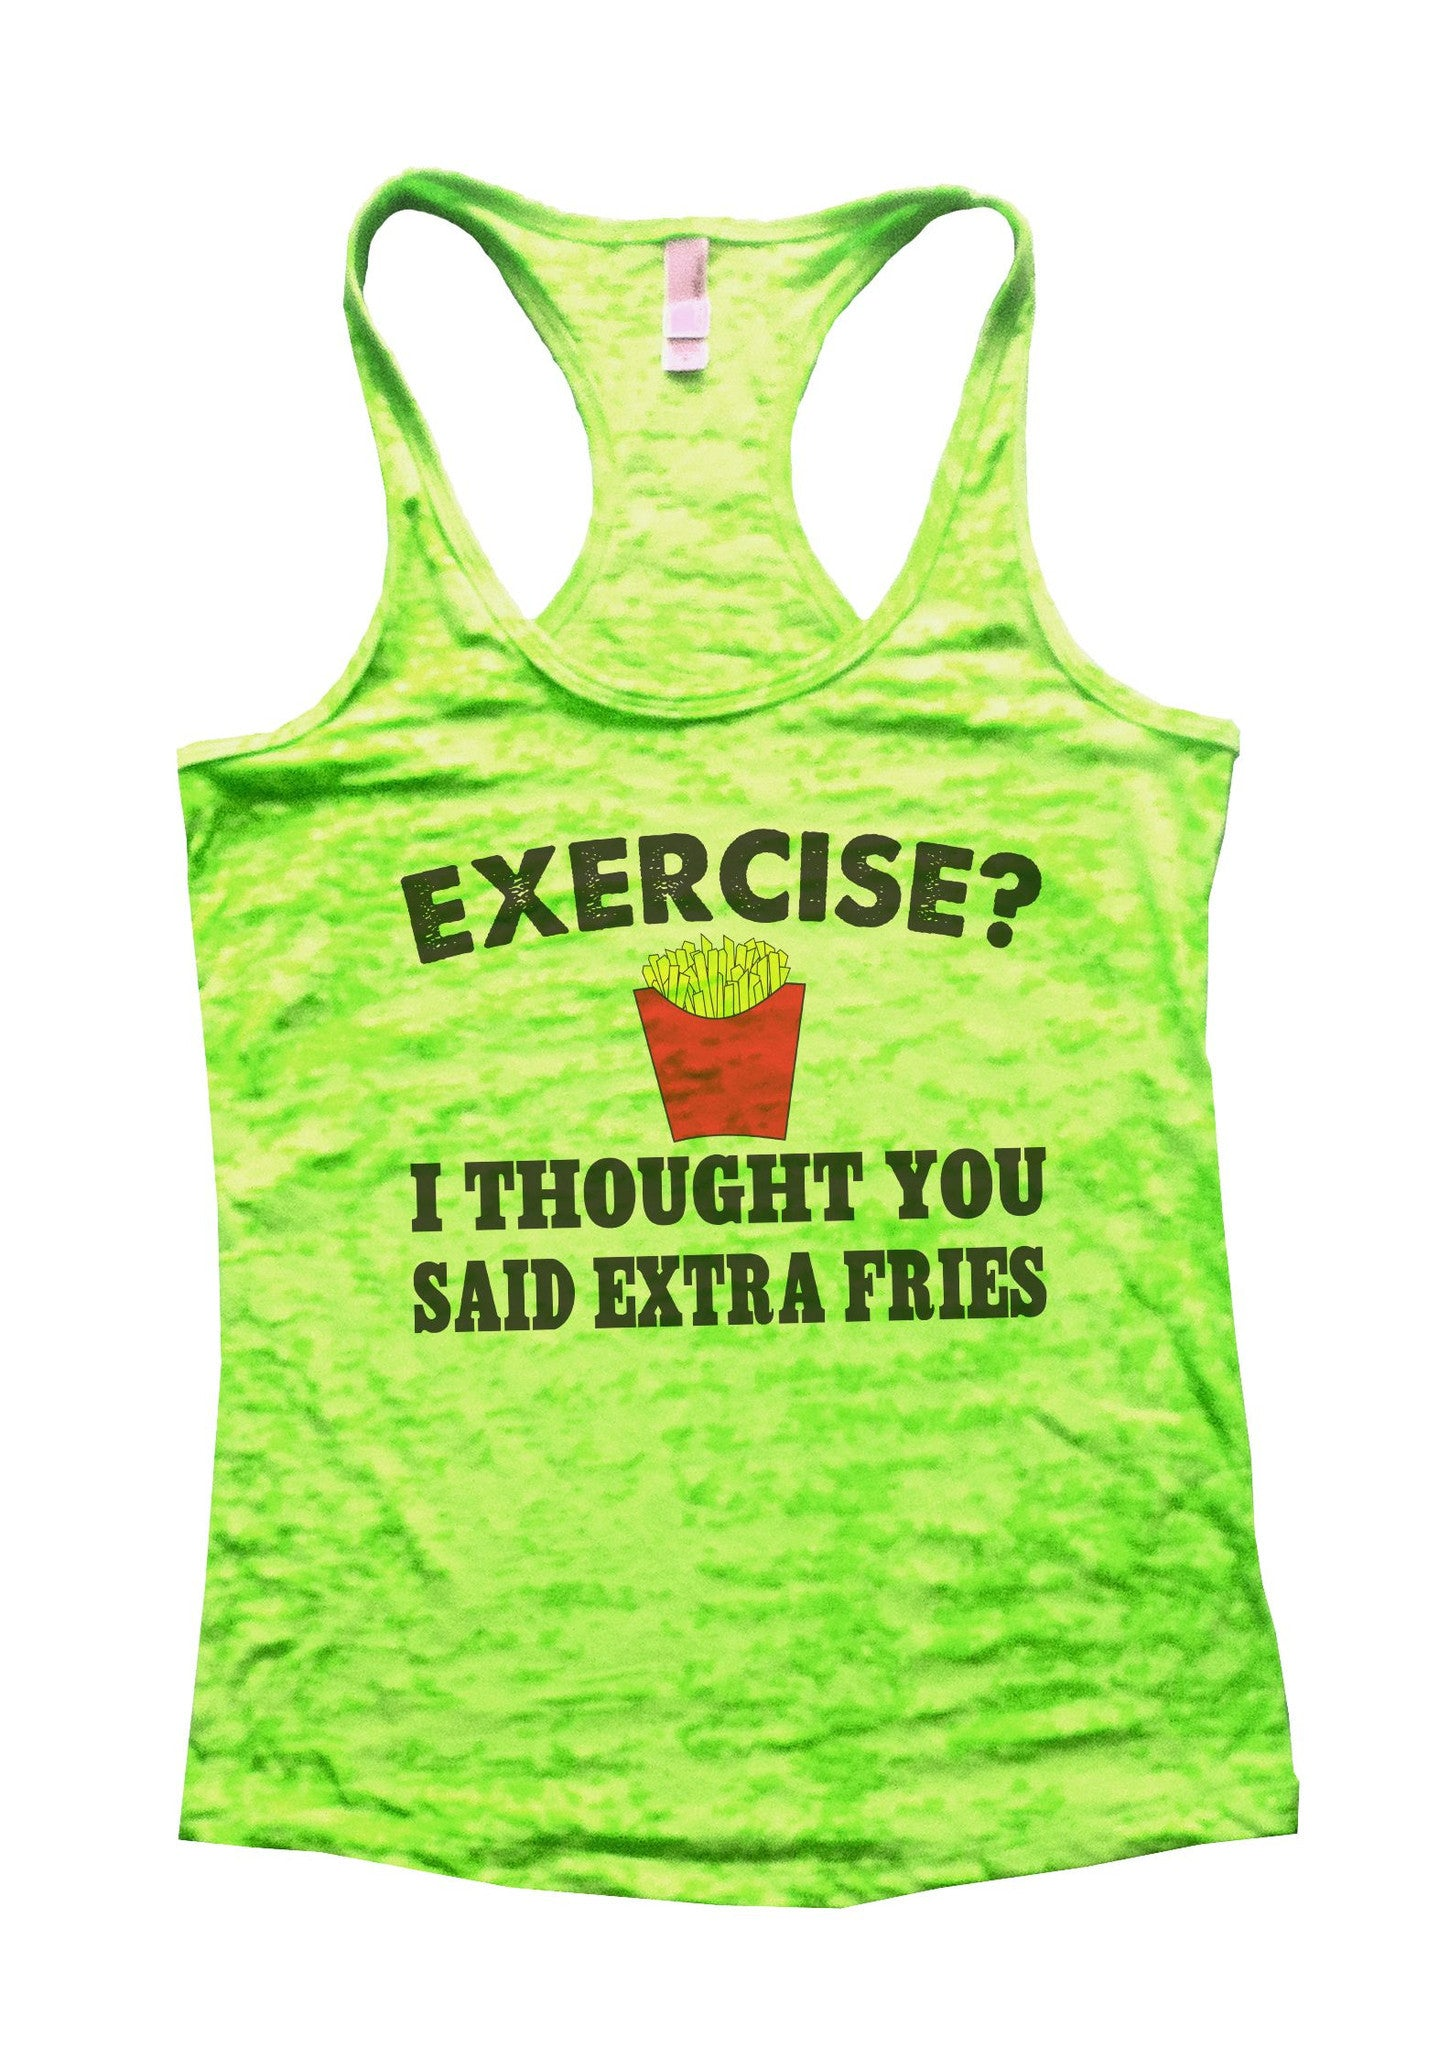 Exercise? I Thought You Said Extra Fries Burnout Tank Top By BurnoutTankTops.com - B32 - Funny Shirts Tank Tops Burnouts and Triblends  - 1